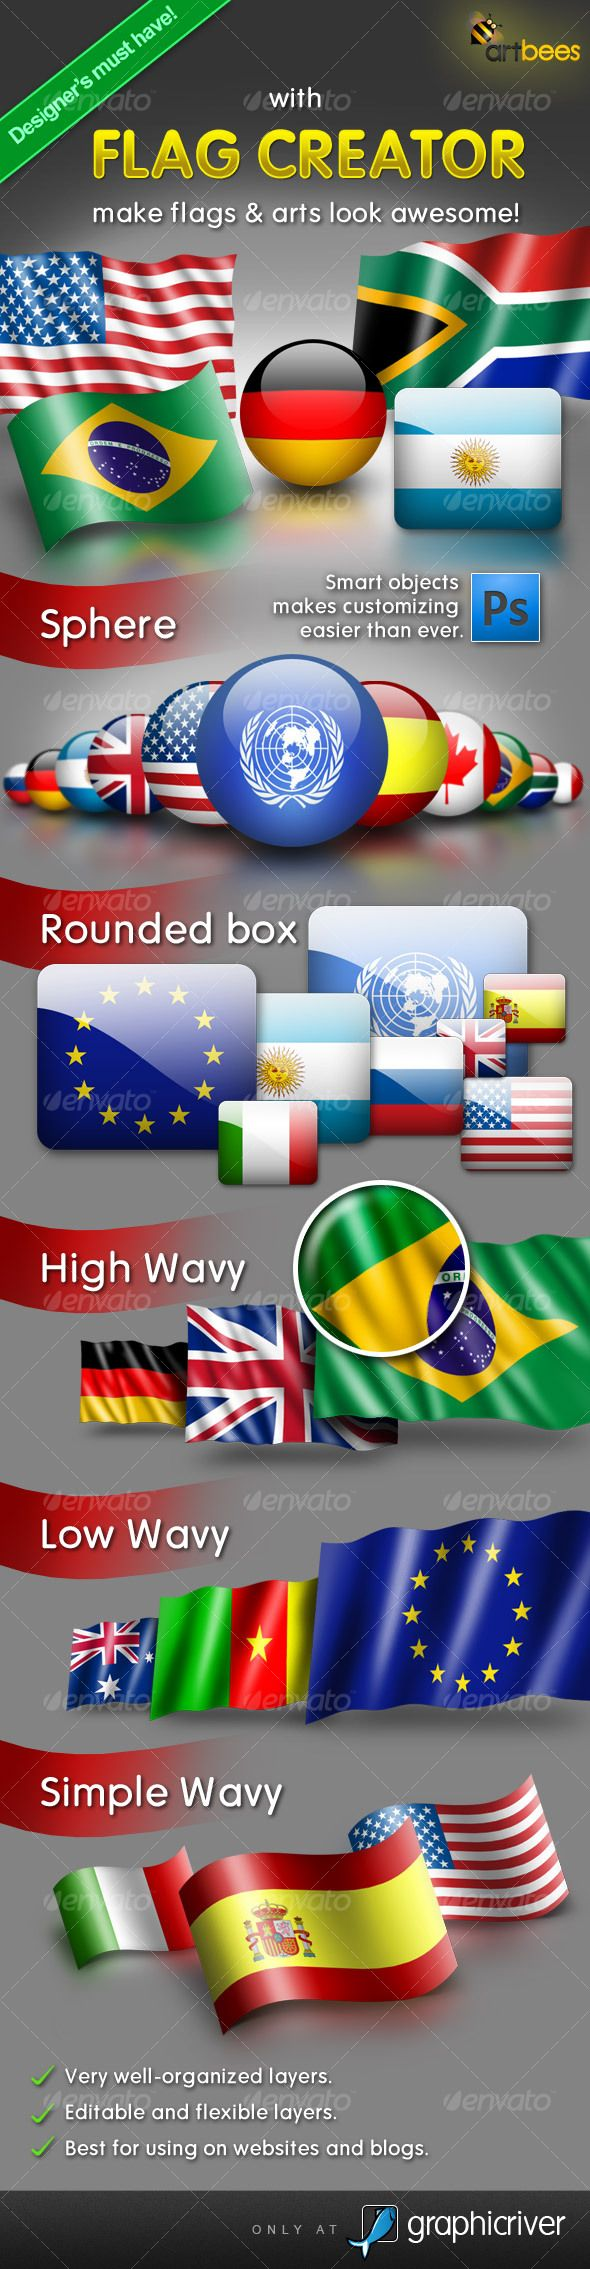 Flag Creator — Photoshop PSD #flag #sphere • Available here → https://graphicriver.net/item/flag-creator/108604?ref=pxcr